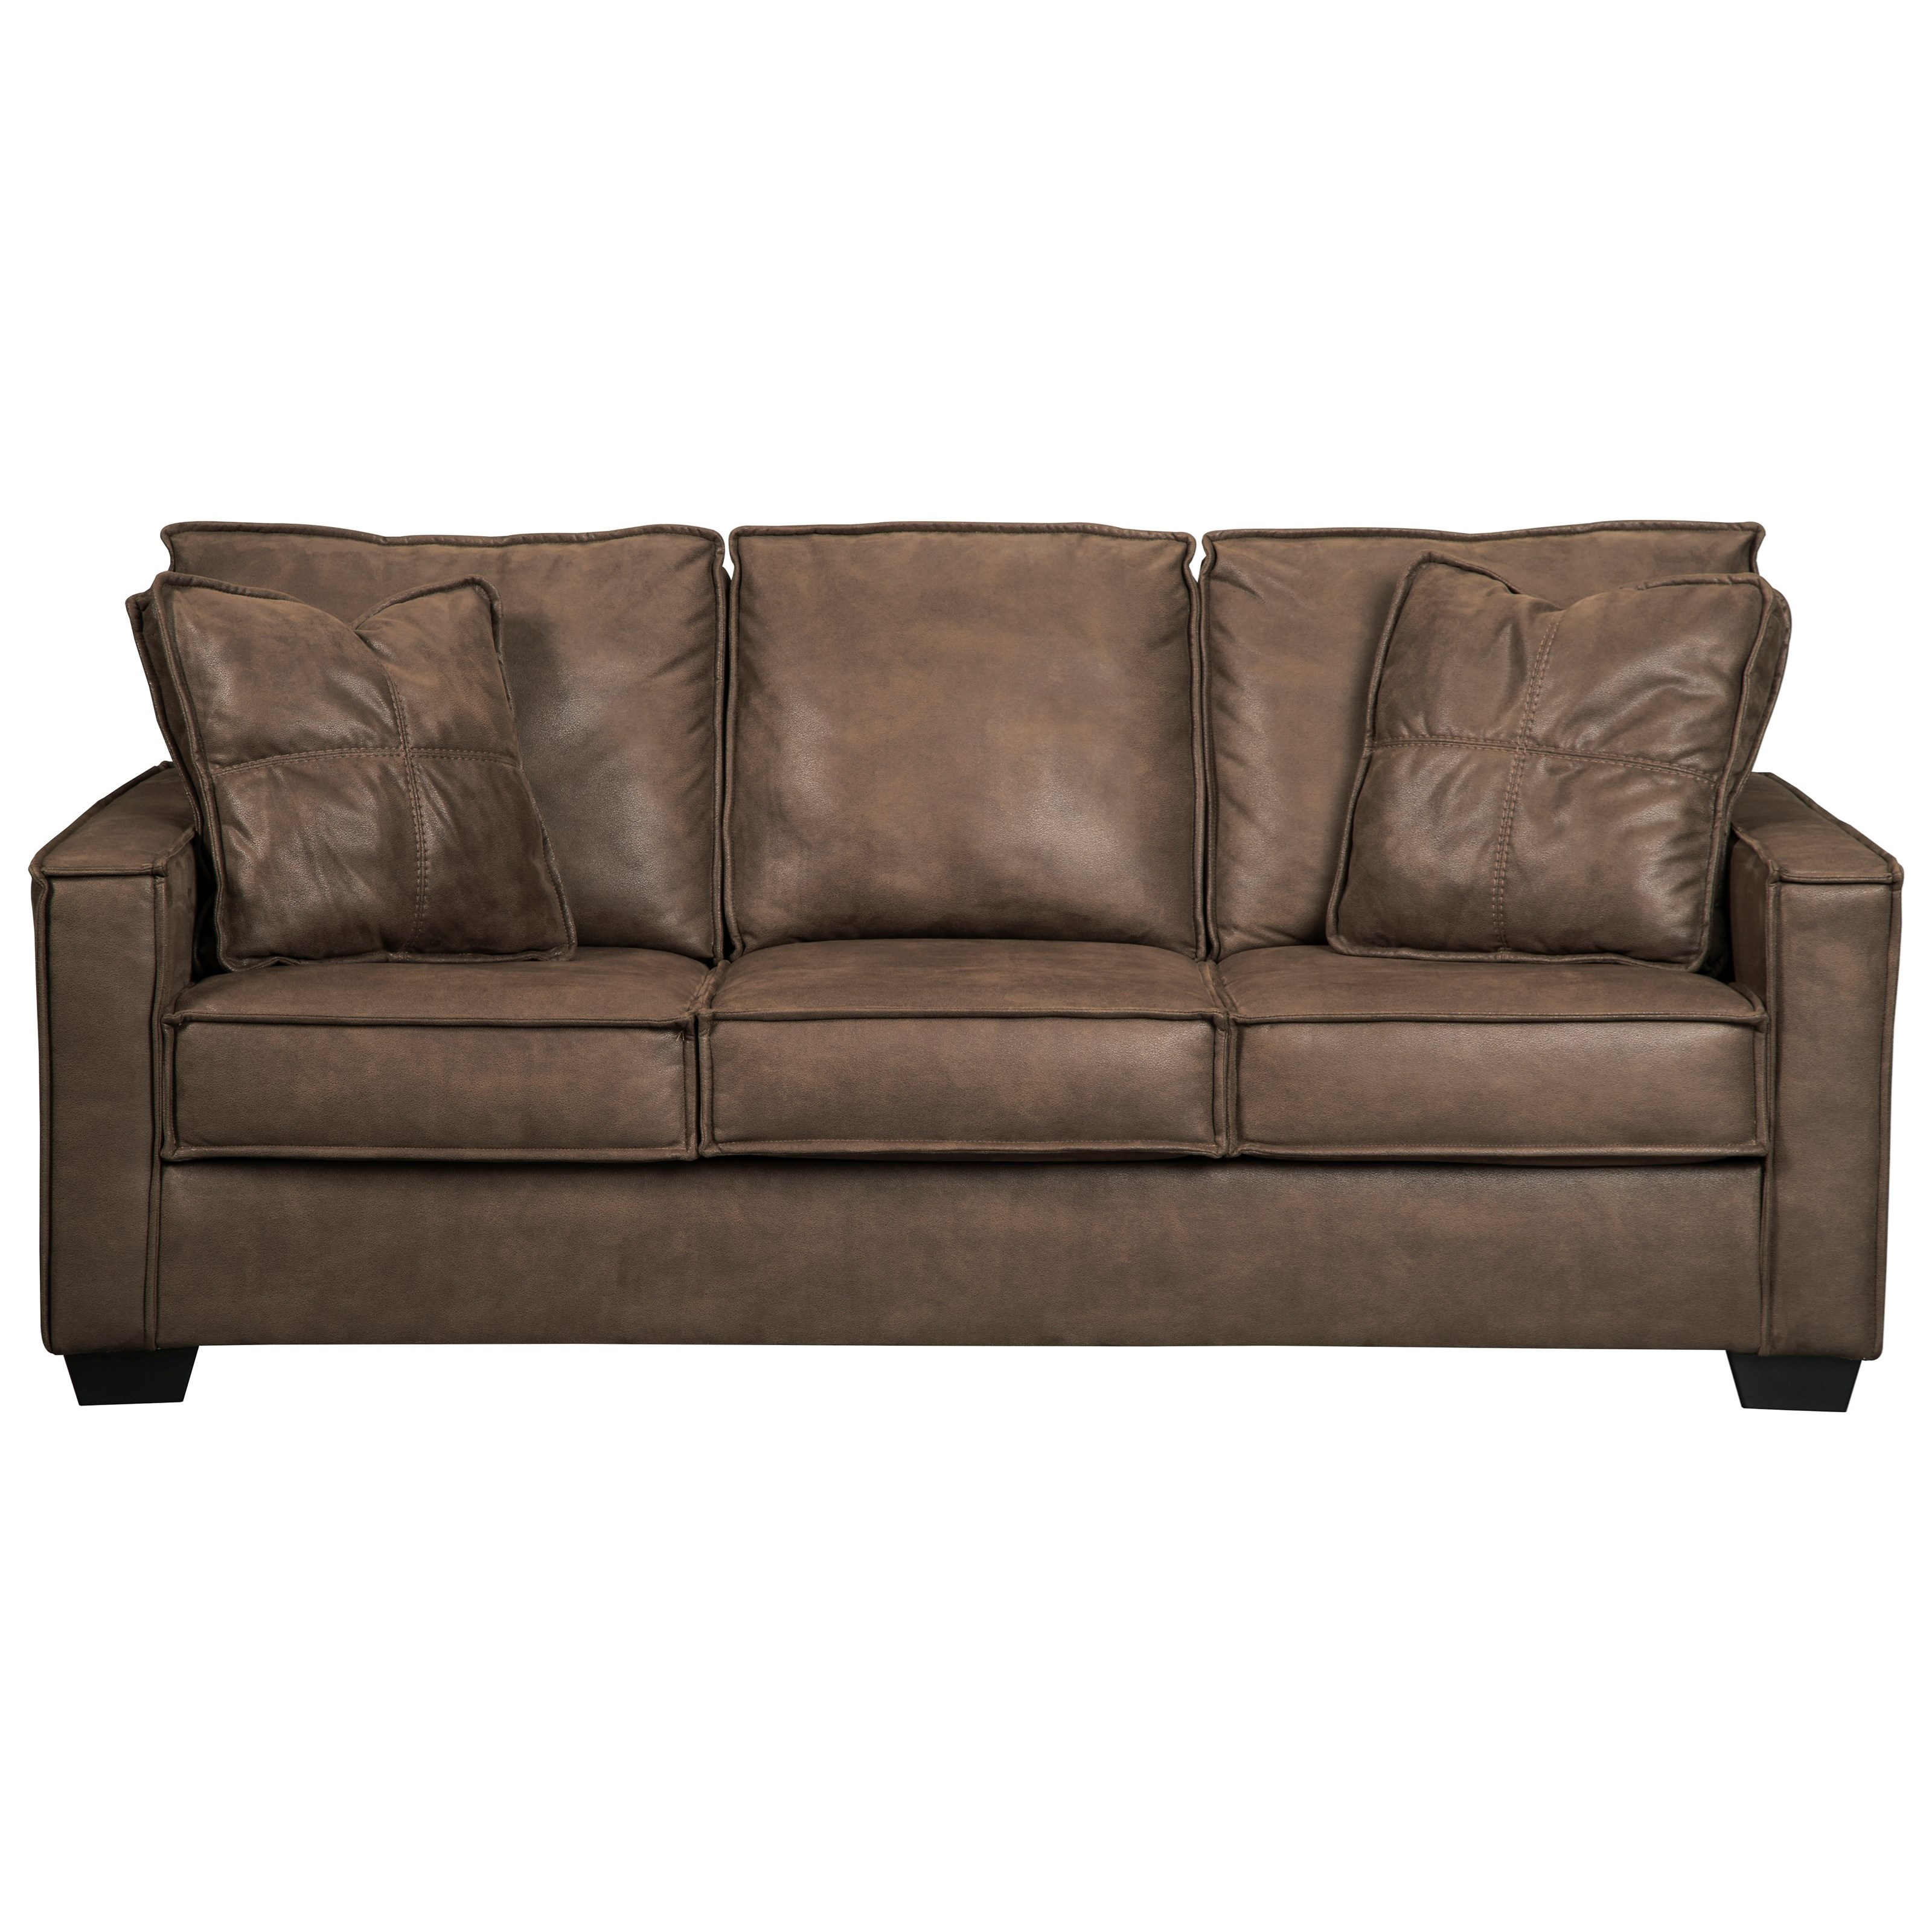 Faux Leather Queen Sofa Sleeper With Memory Foam Mattress